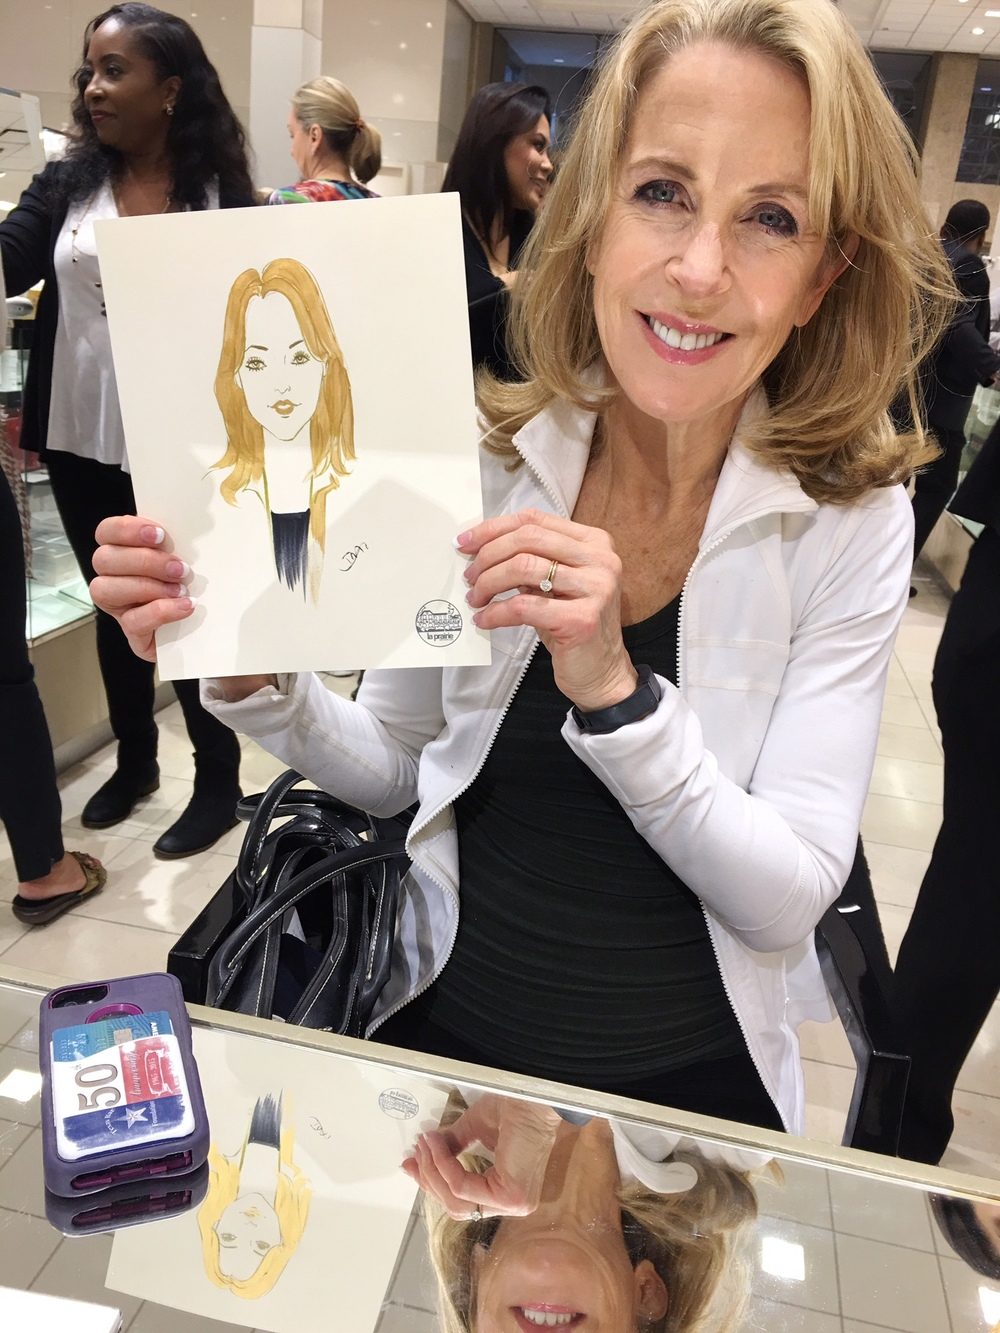 La-Prairie-live-sketch-event-at-Neiman-Marcus-Houston-by-fashion-illustrator-Rongrong-DeVoe--2